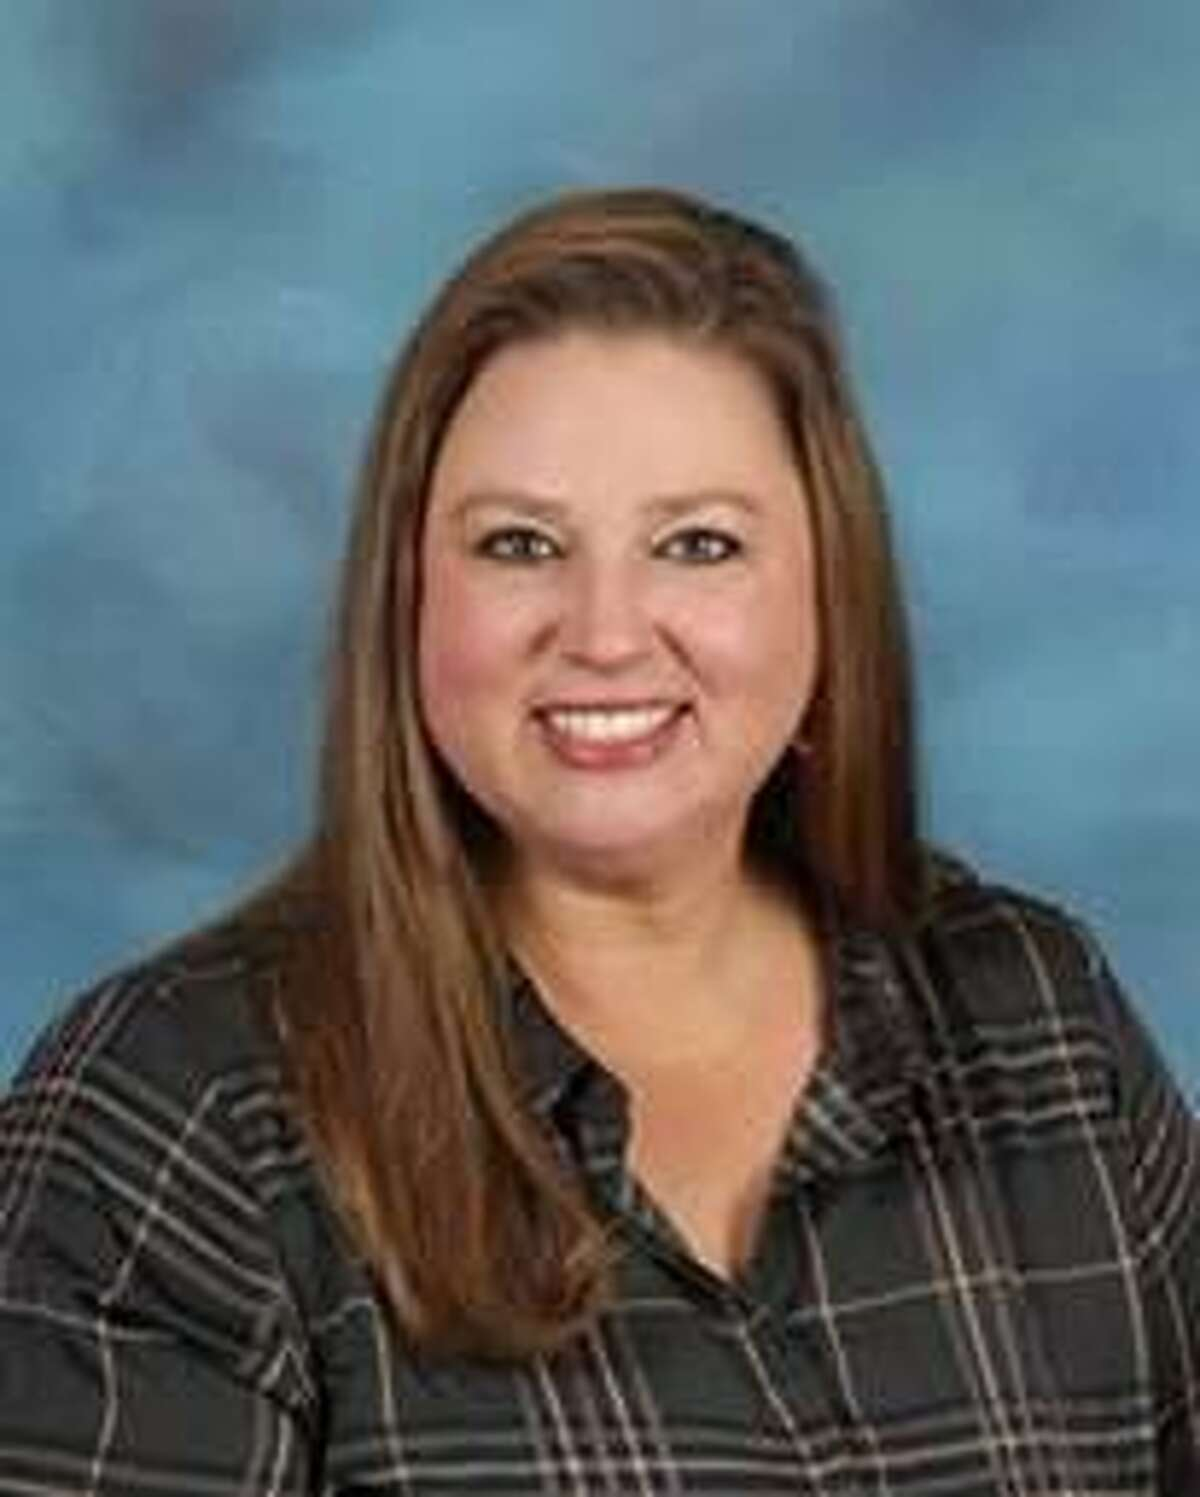 Carrie Lowery has been named principal at Katy Junior High in Katy Independent School District.